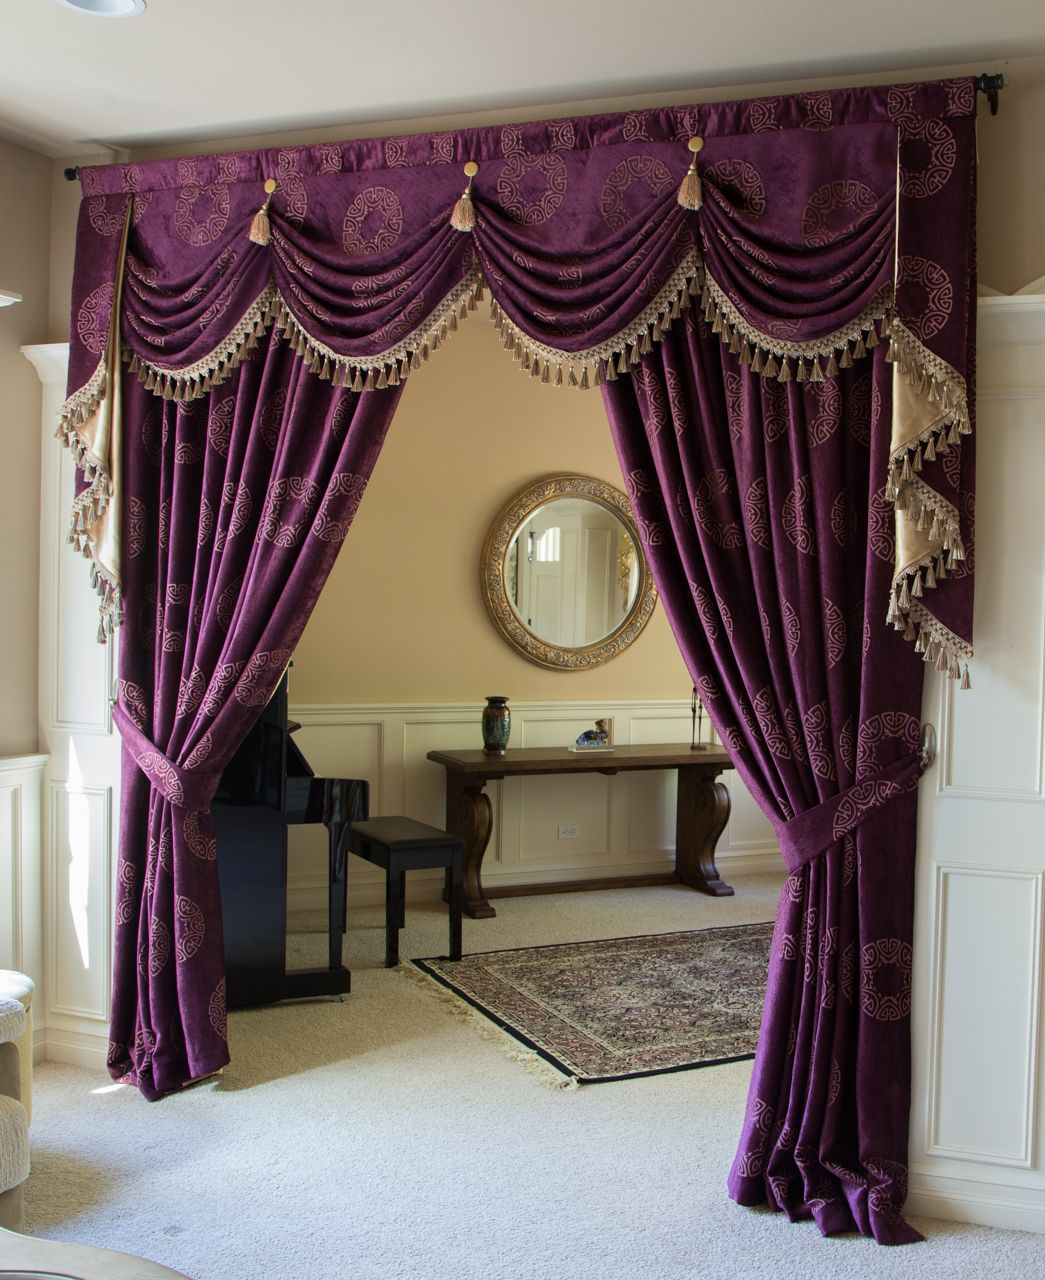 Orchid Imperial Austrian Swag Style Swag Valance Curtain